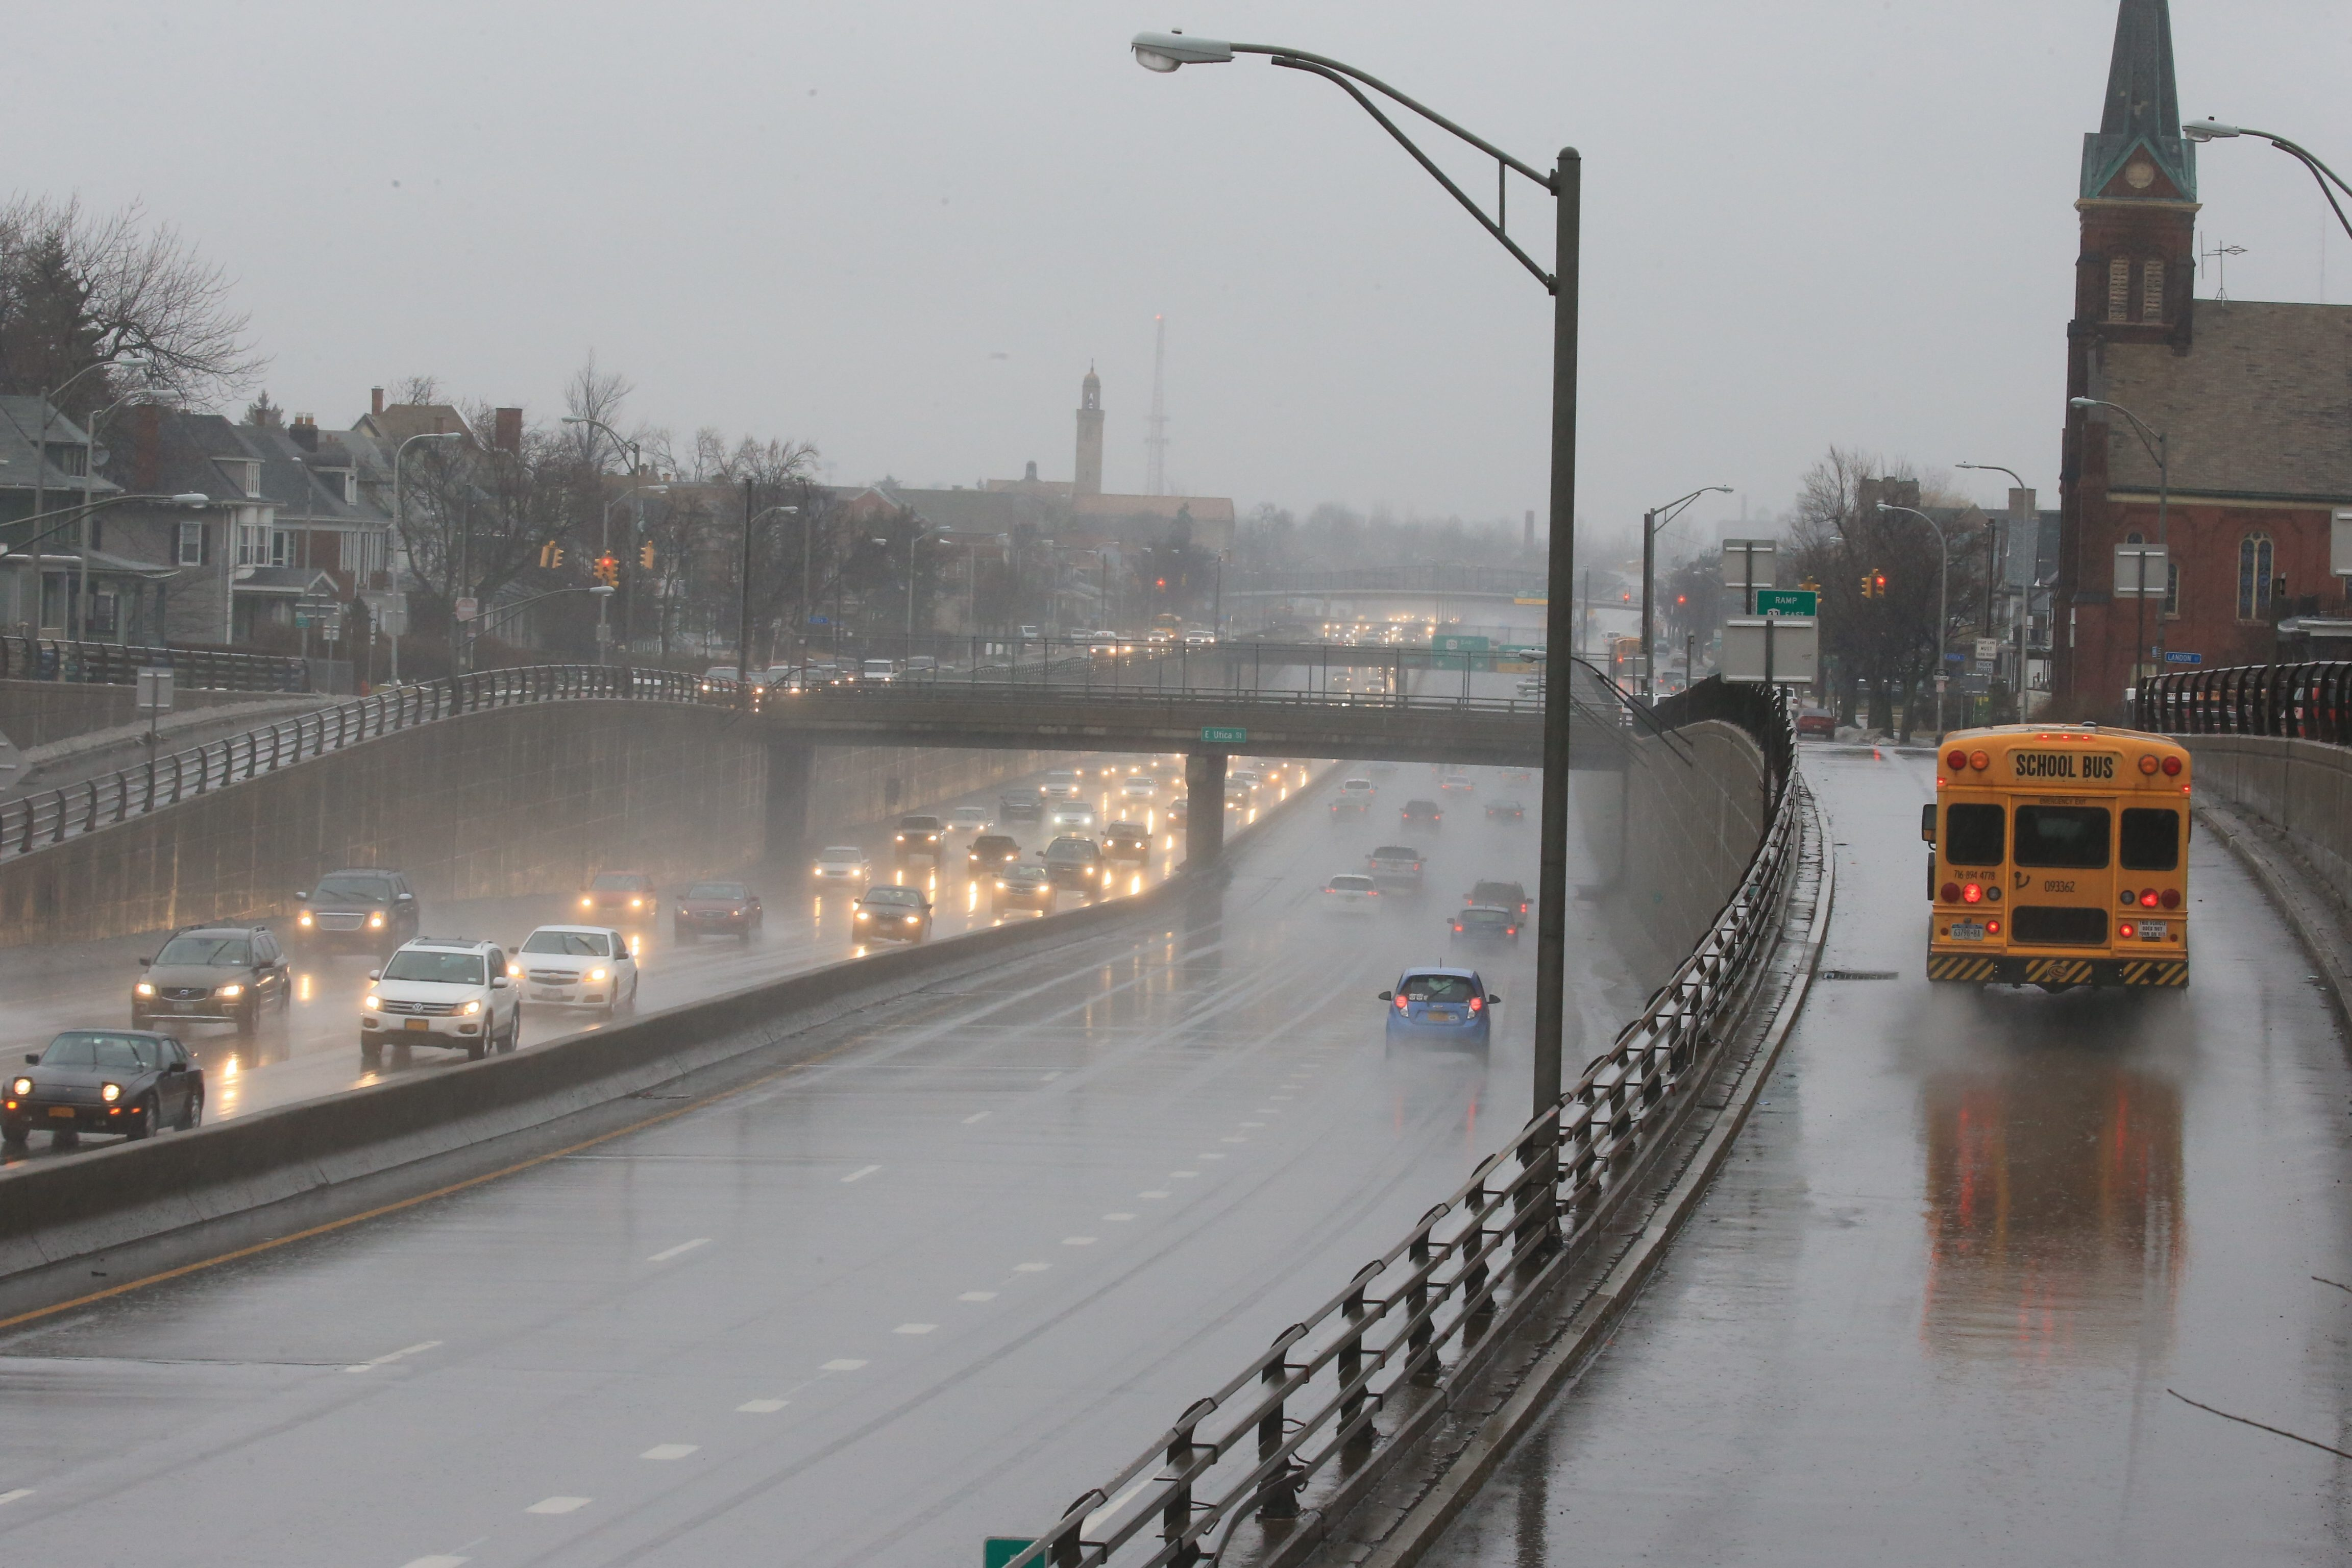 Commuters drive into the city on Route 33, in Buffalo, on  Wednesday Feb. 24, 2016, under a steady rain. Freezing rain had been forecast for later in the day. (John Hickey/Buffalo News)